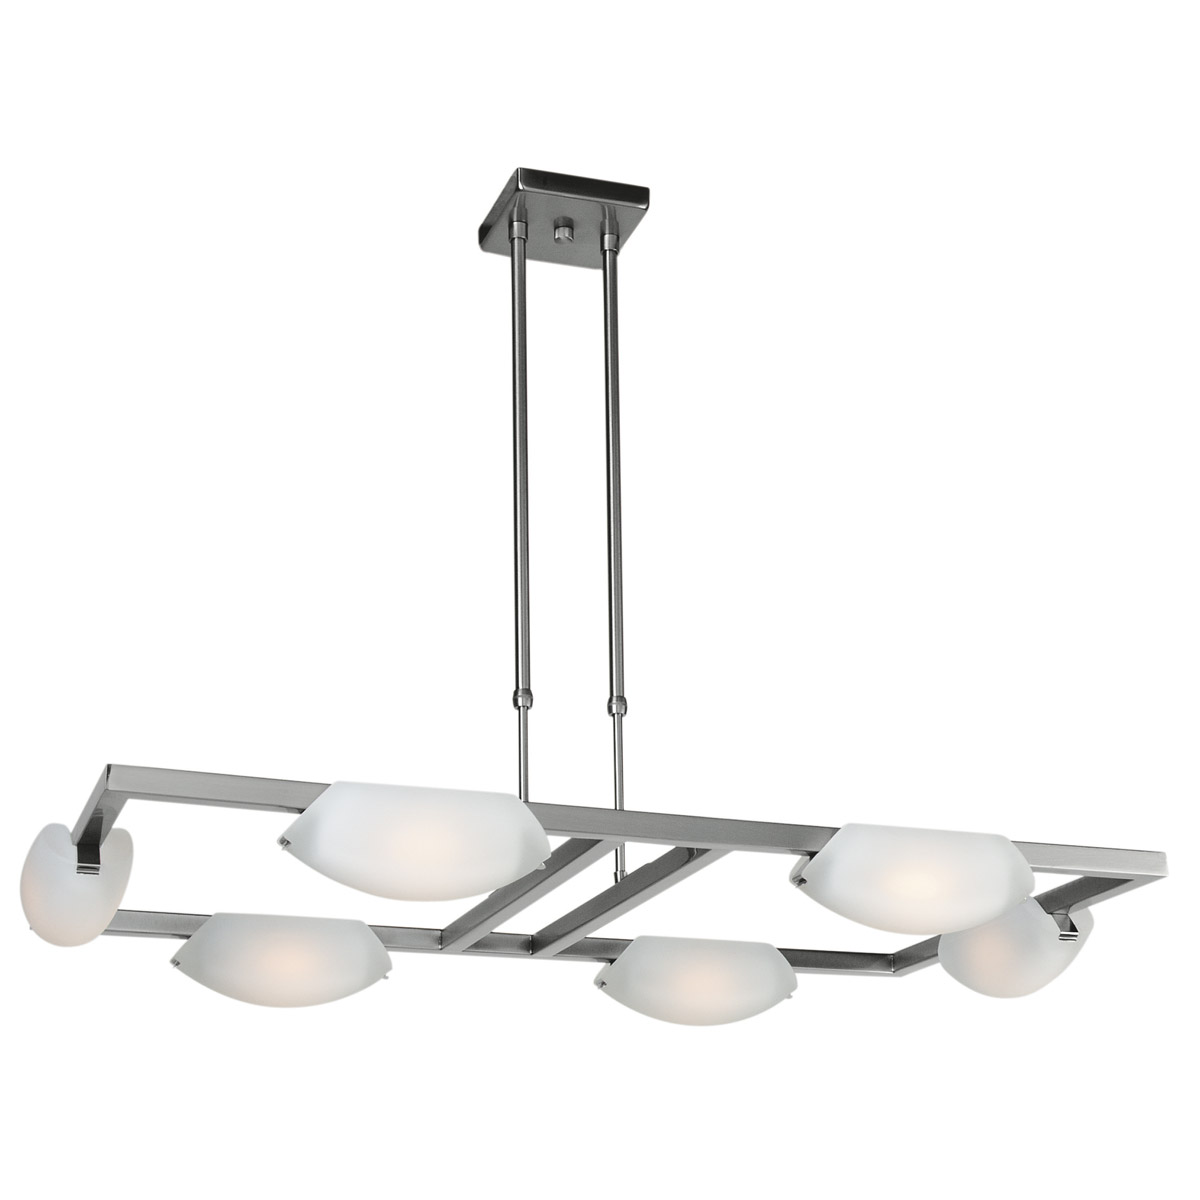 Matte Finish Chrome Chandelier Ceiling Light by Access Lighting